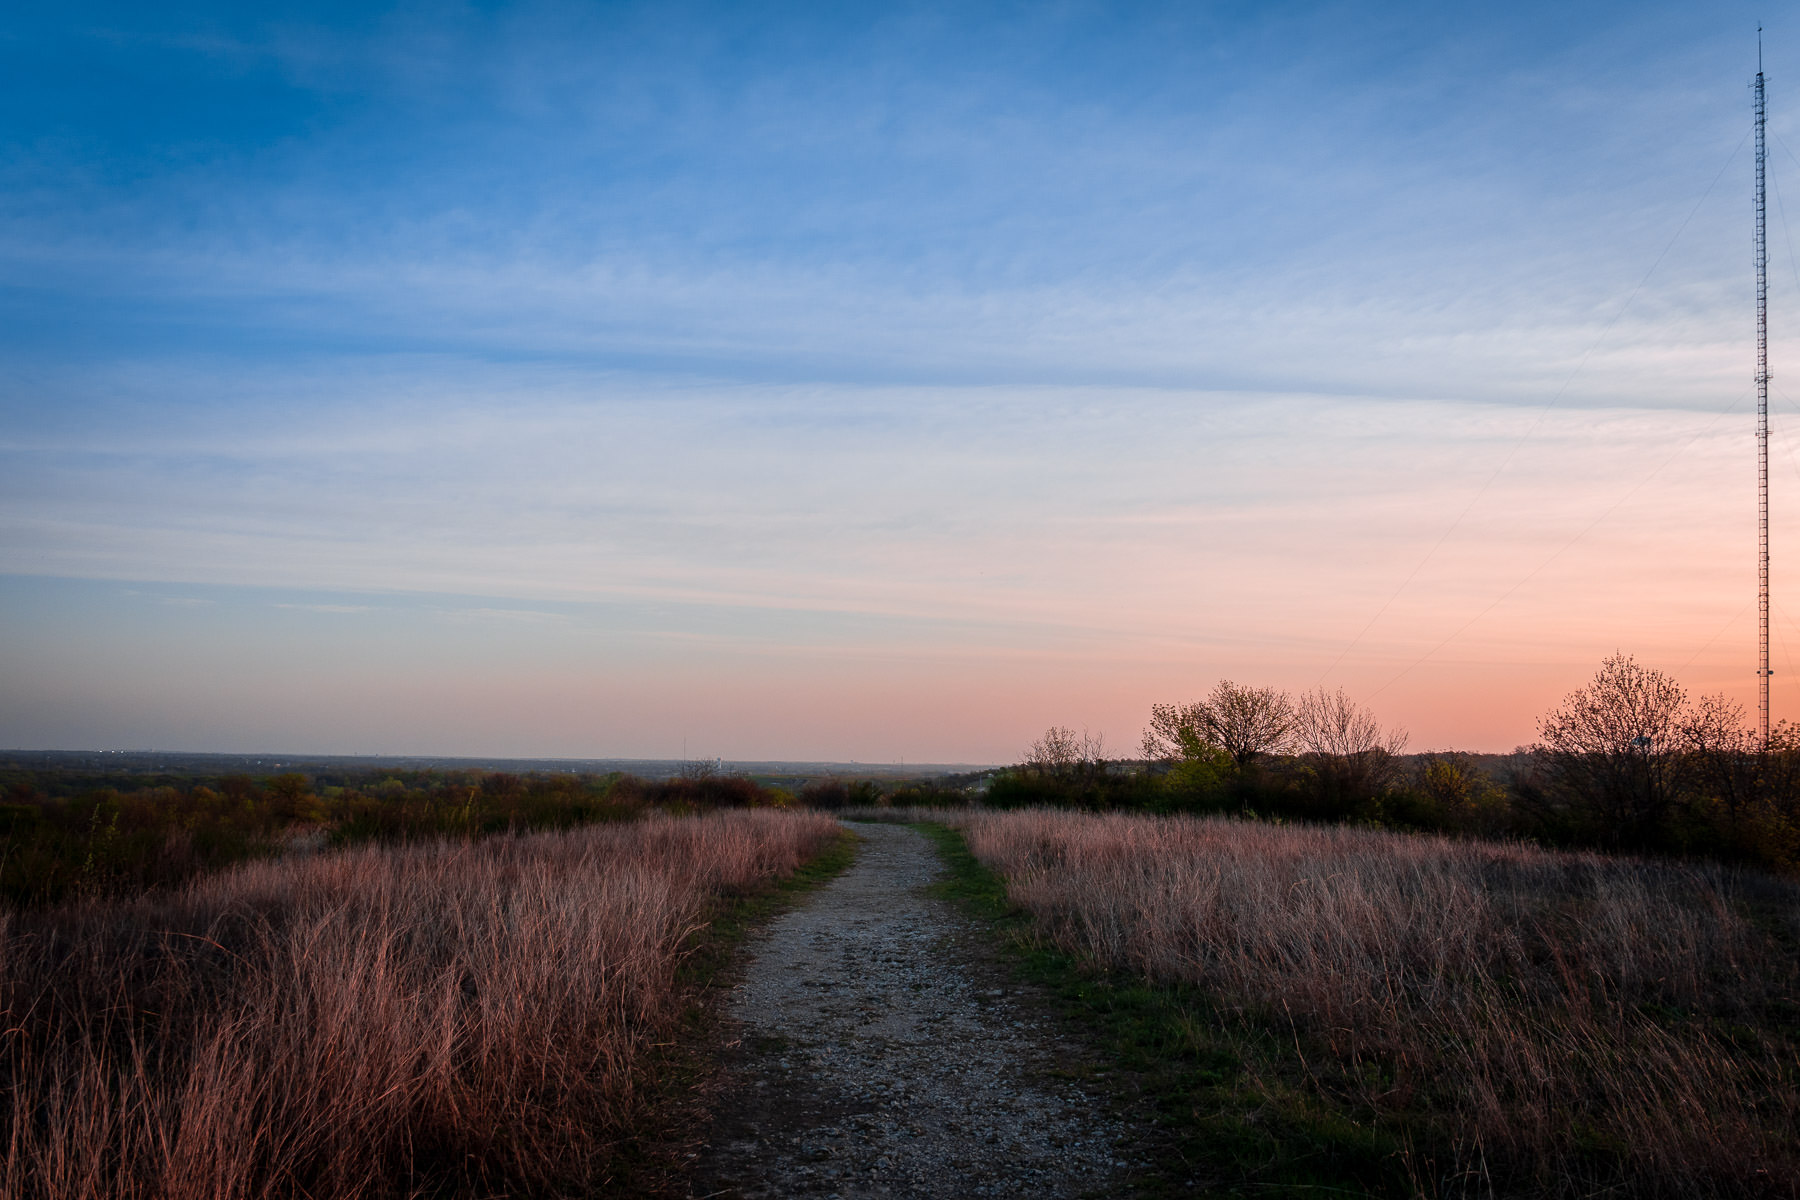 The sun rises over a hilltop path at Fort Worth, Texas' Tandy Hills Natural Area.